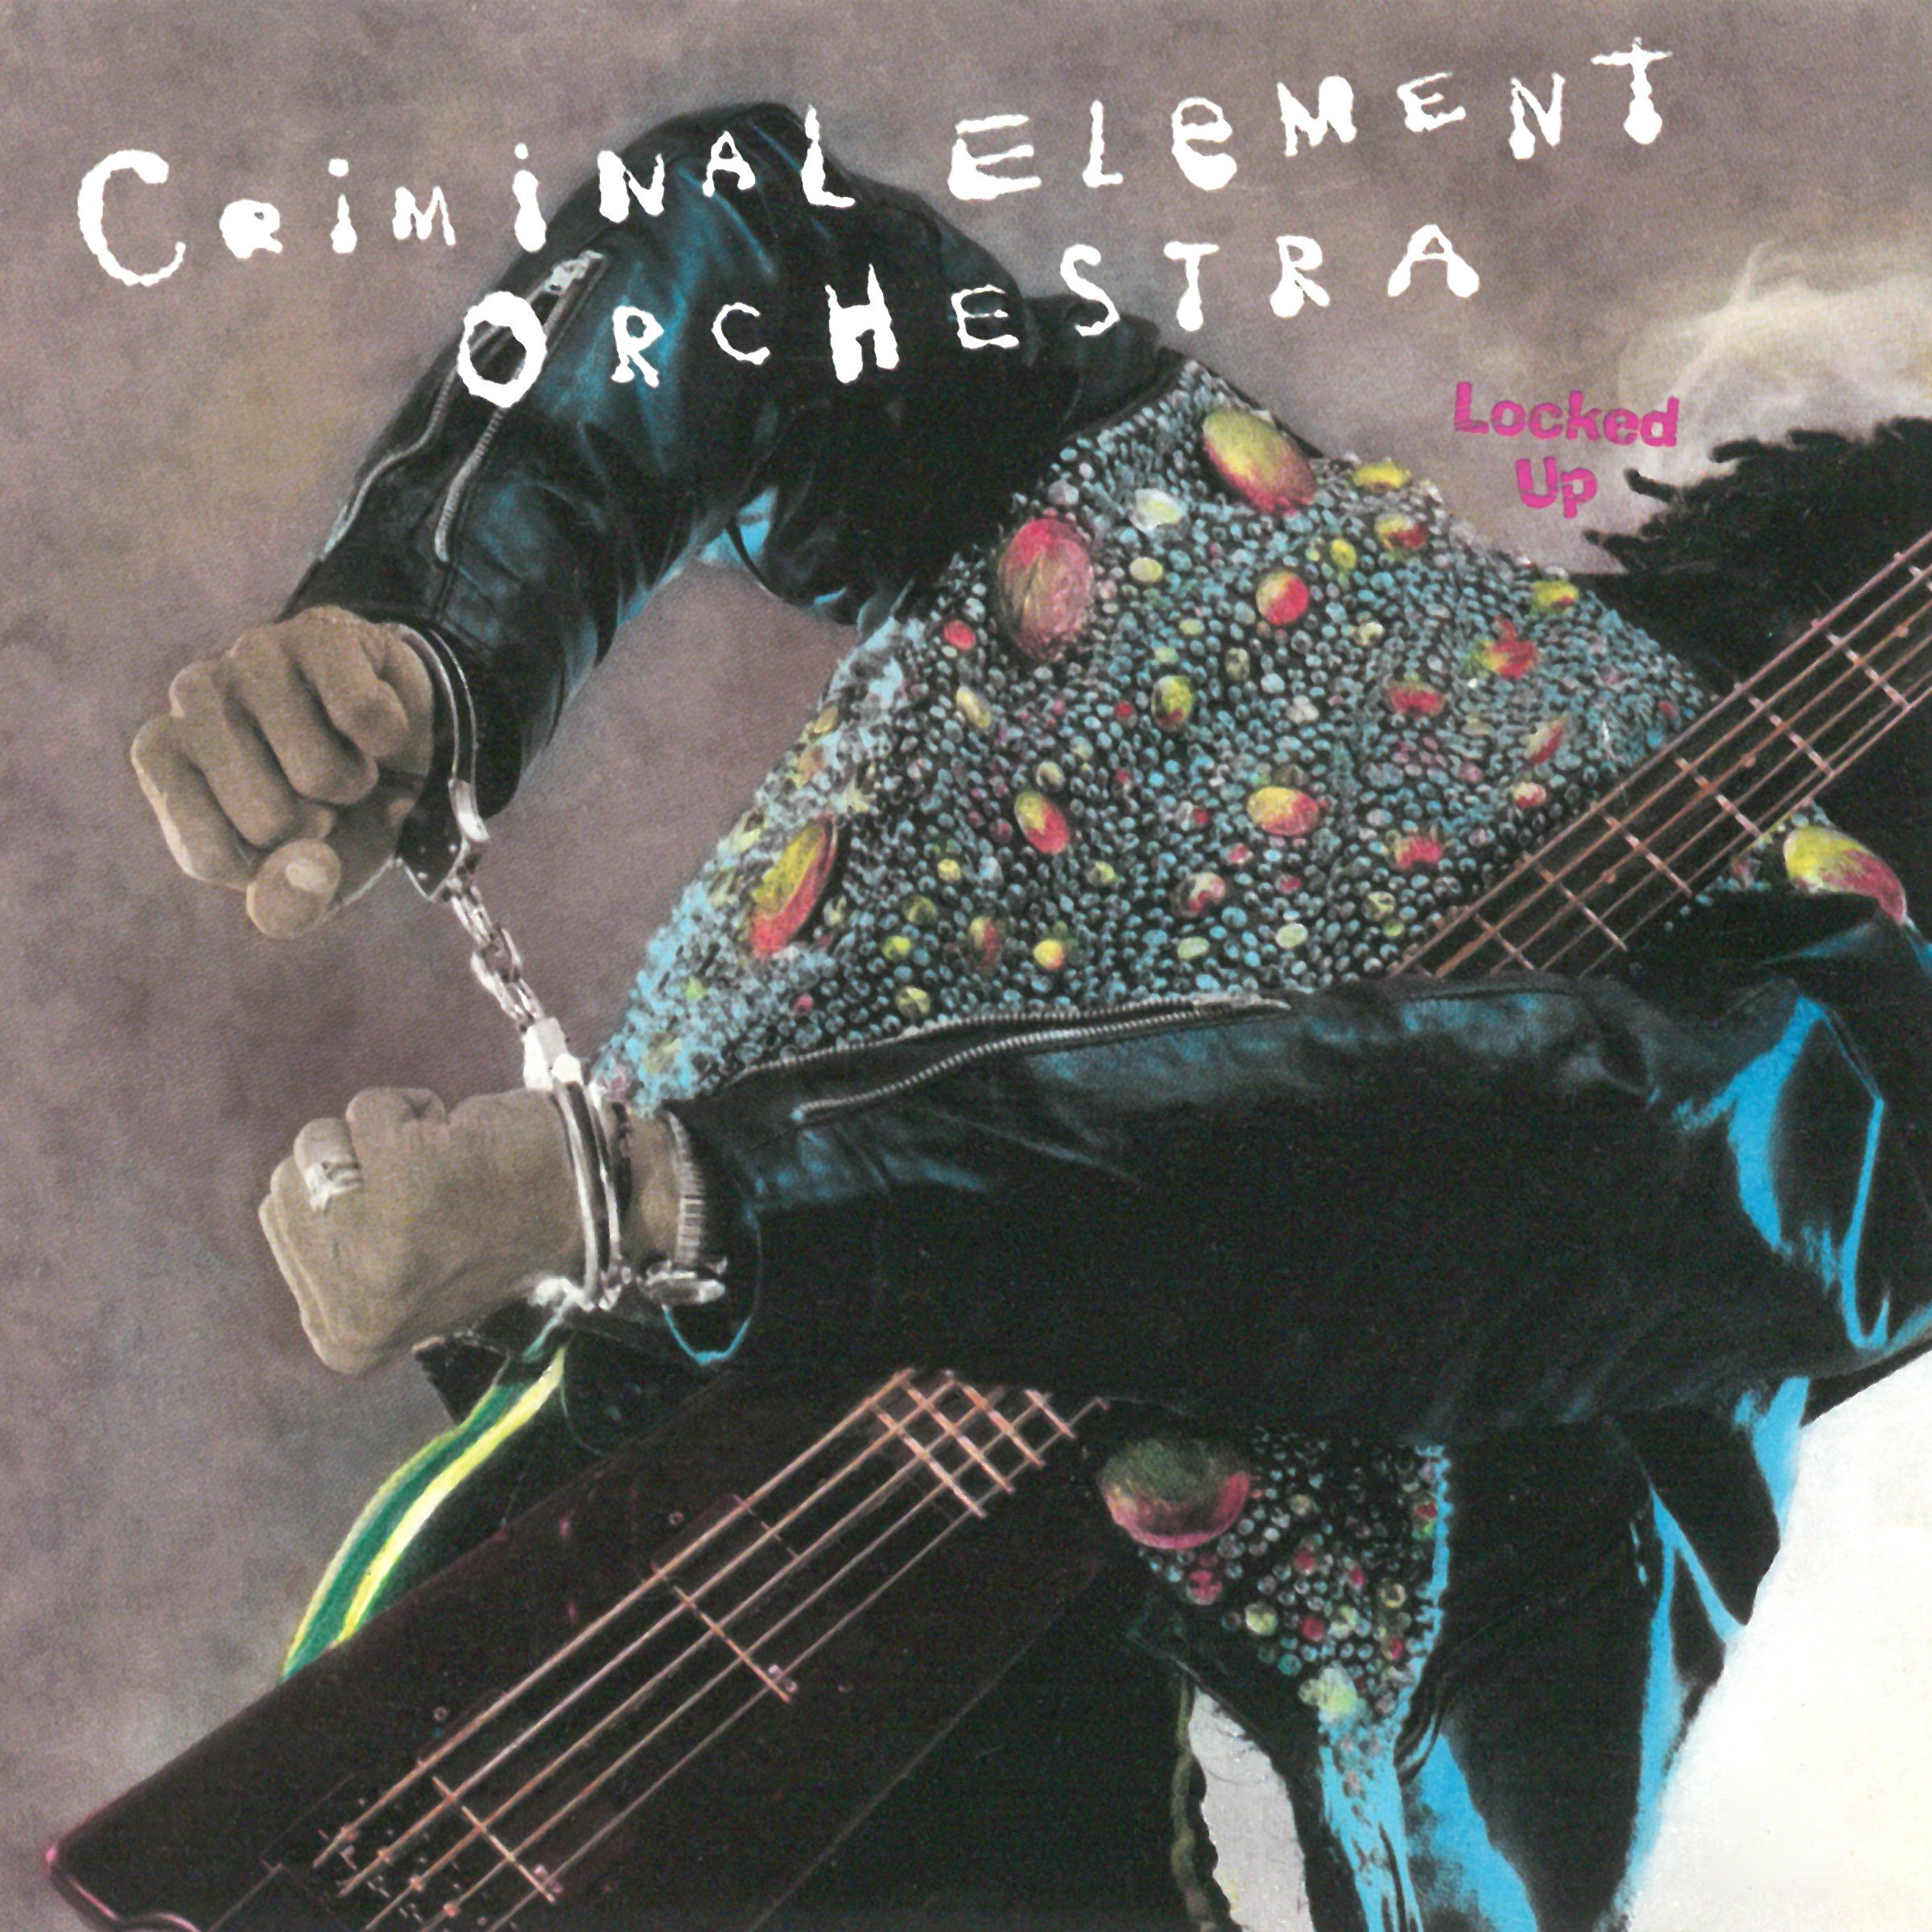 Criminal Element Orchestra – Locked Up (1989) [FLAC]